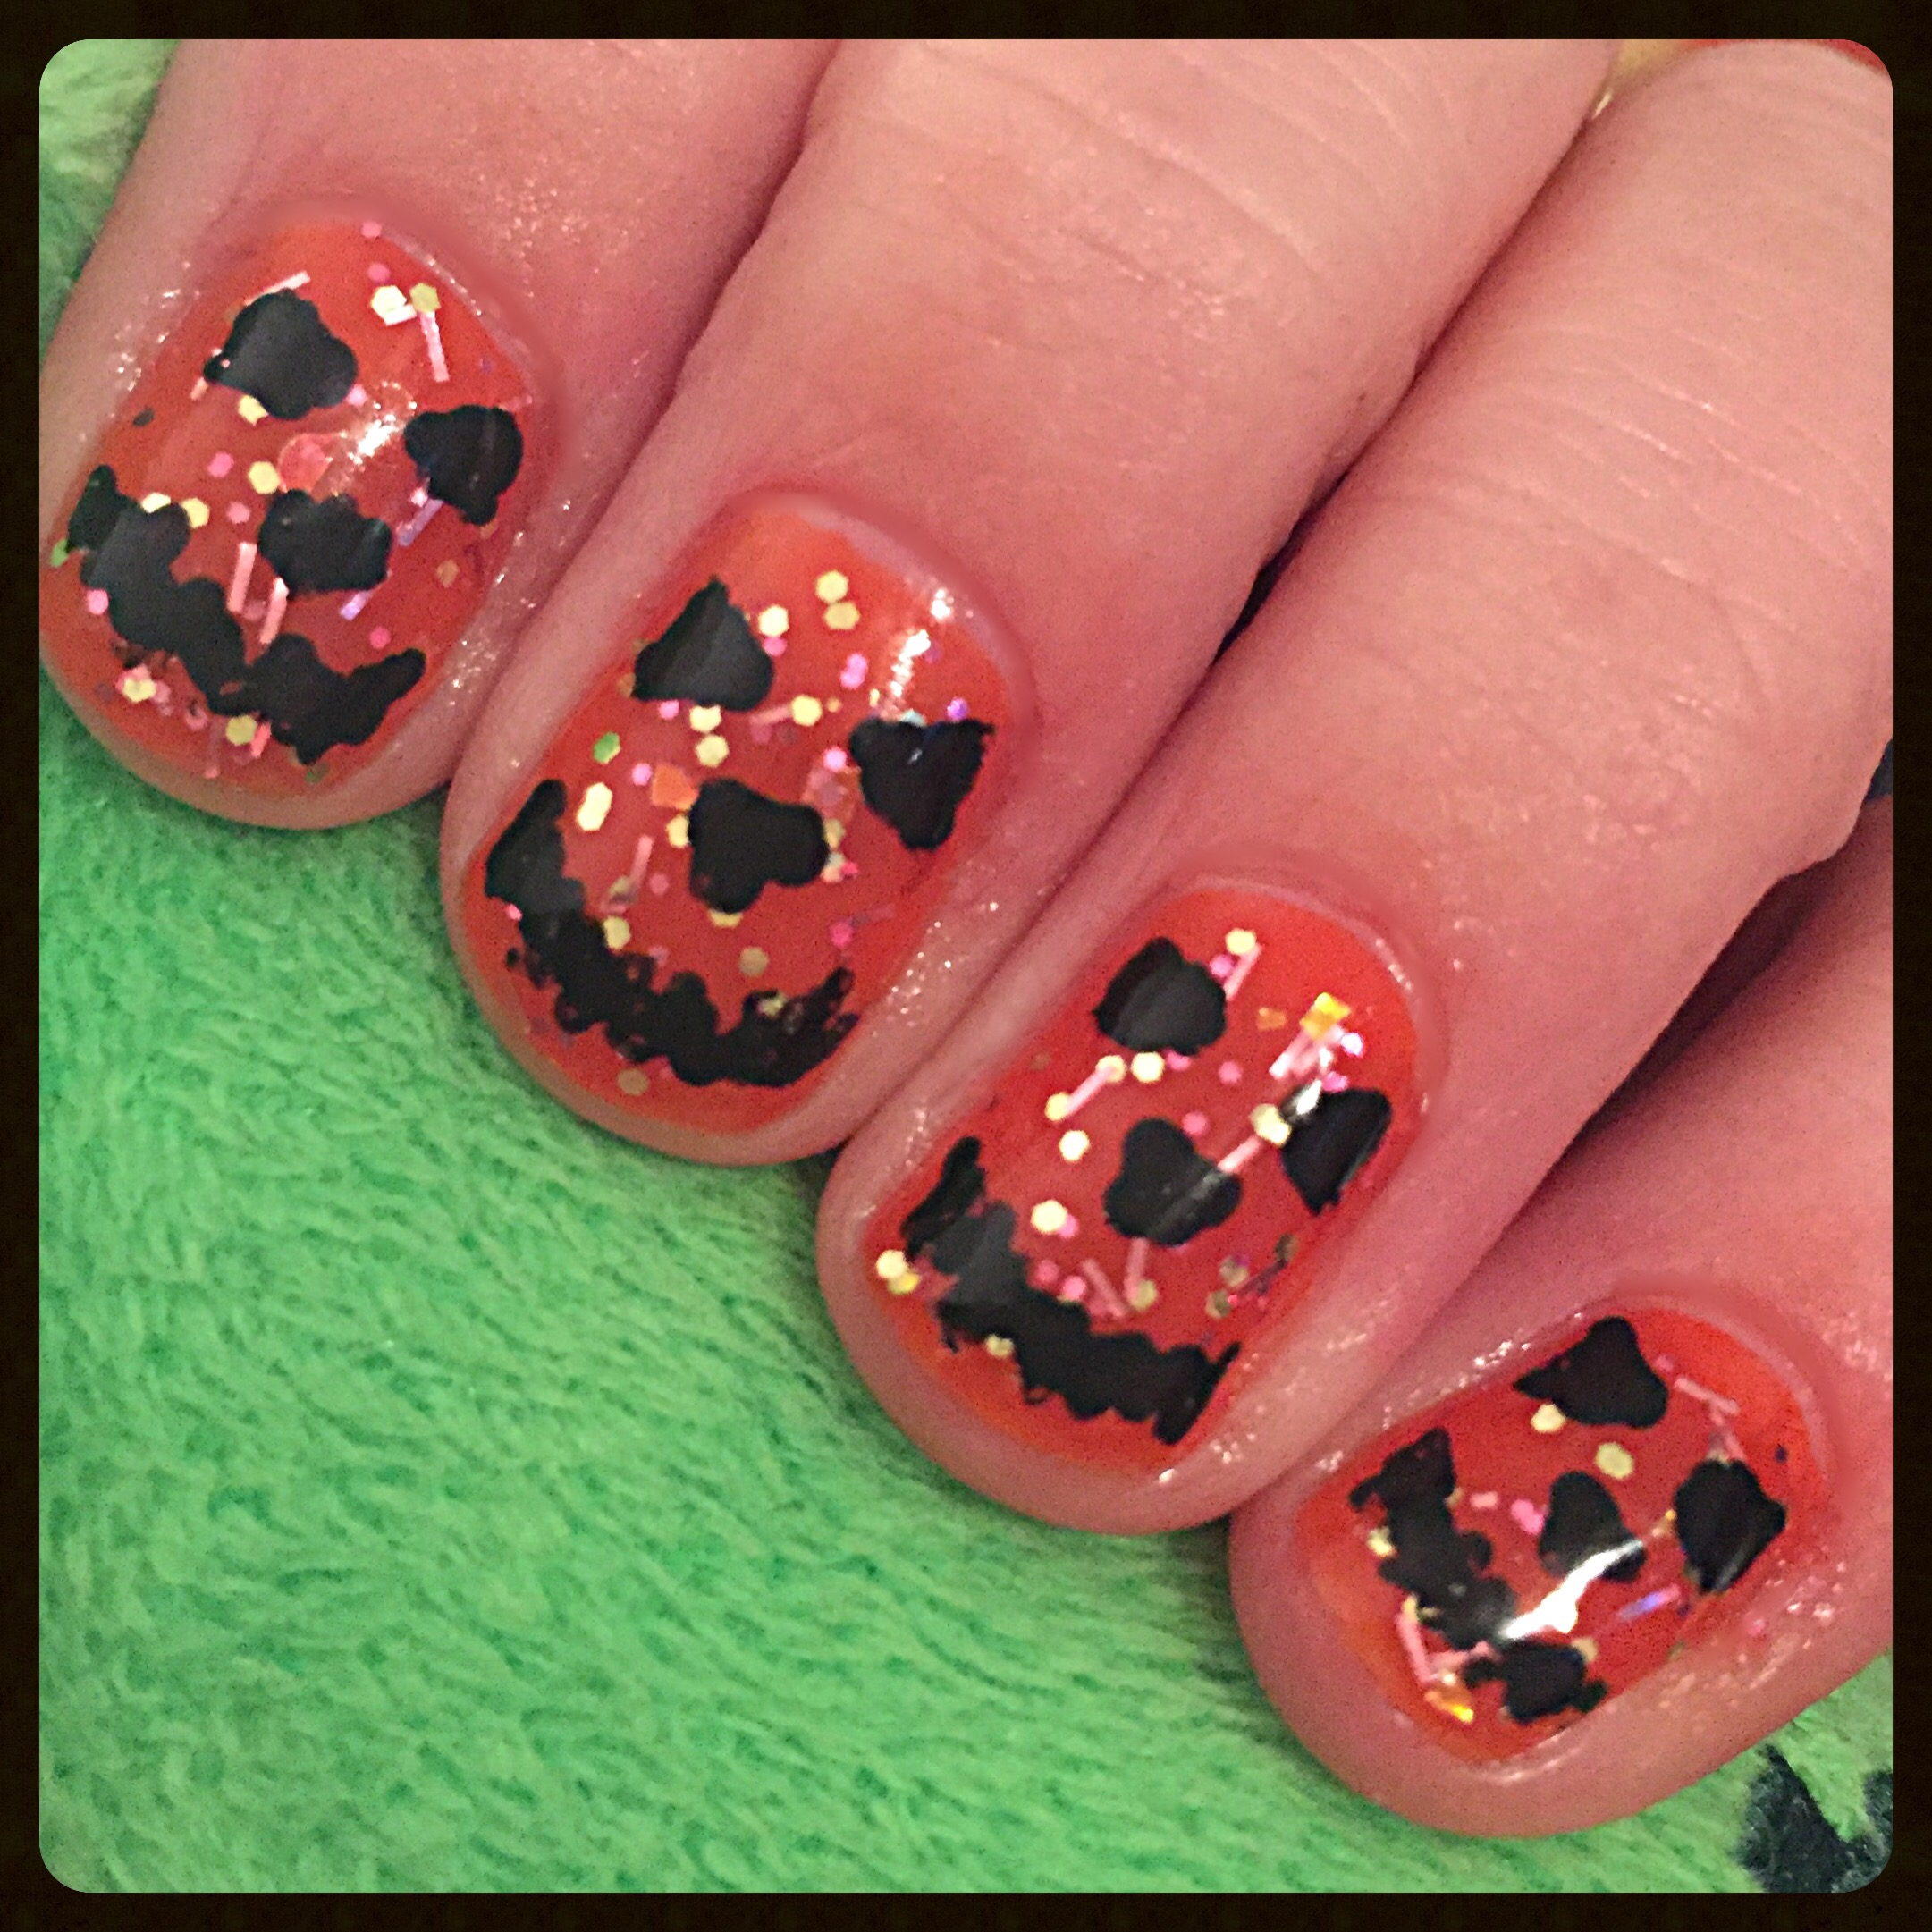 Jack-O-Lantern Nails | beginnersnailart\'s Blog